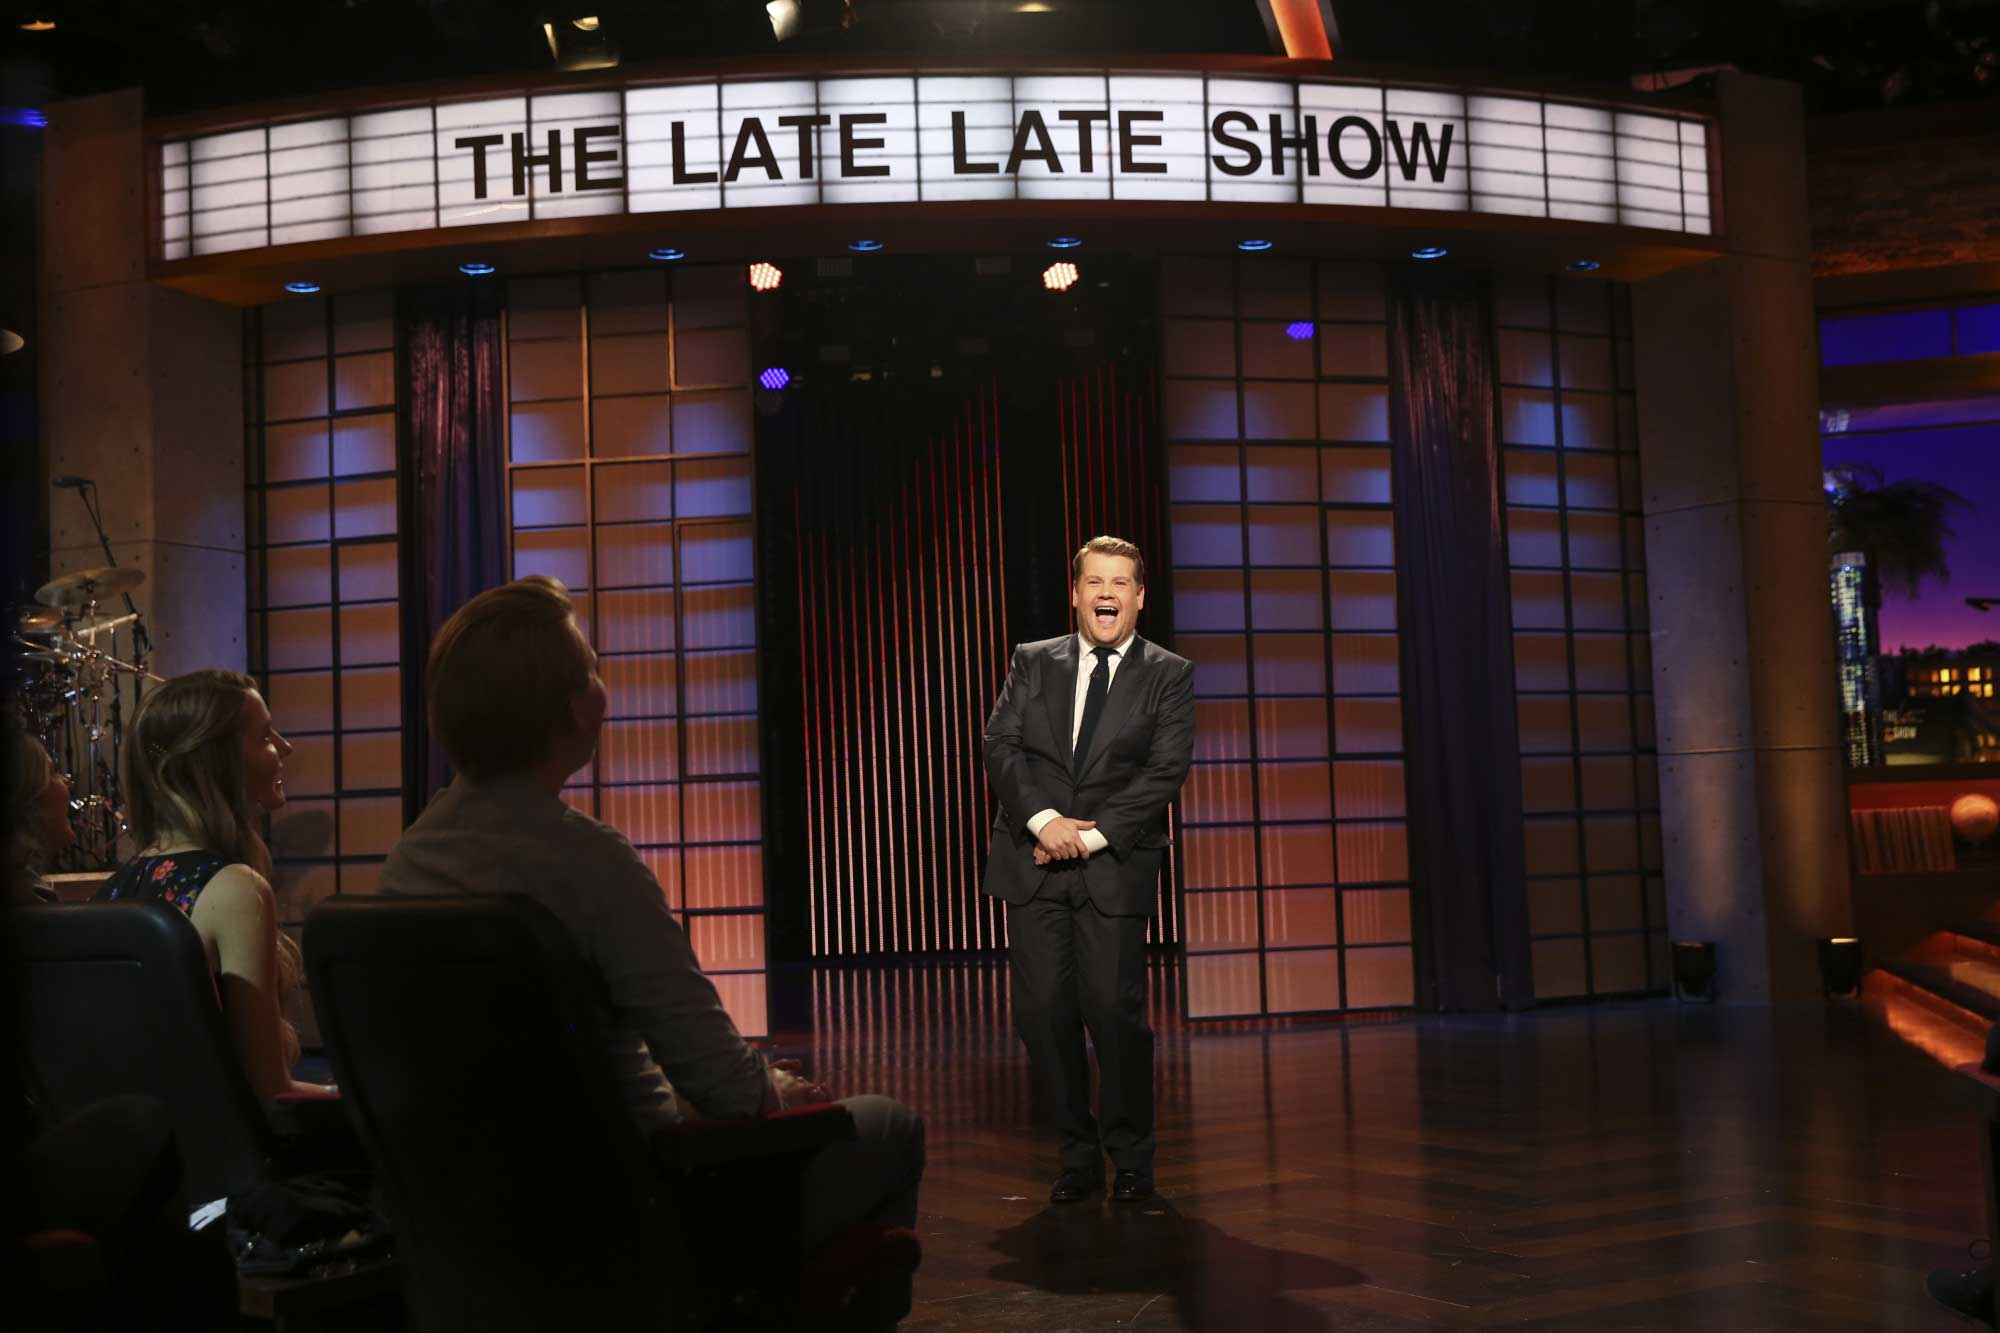 James Corden steps on stage for the first episode of  The Late Late Show with James Corden,  in Los Angeles on March 23, 2015.